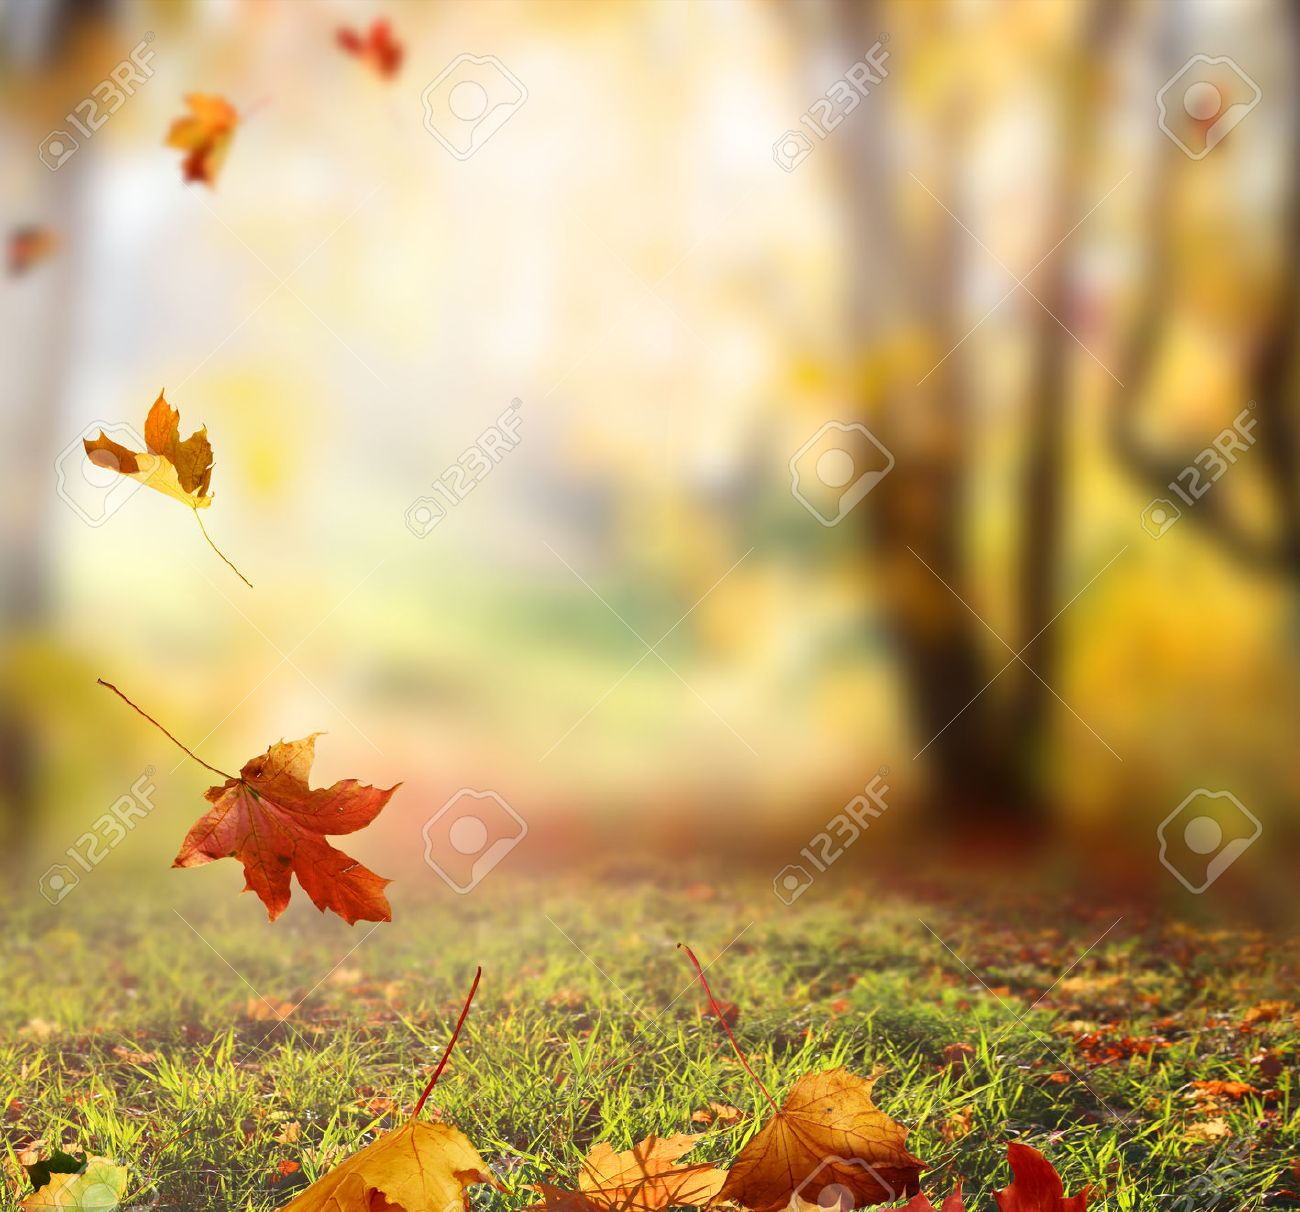 falling autumn leaves background stock photo picture and royalty